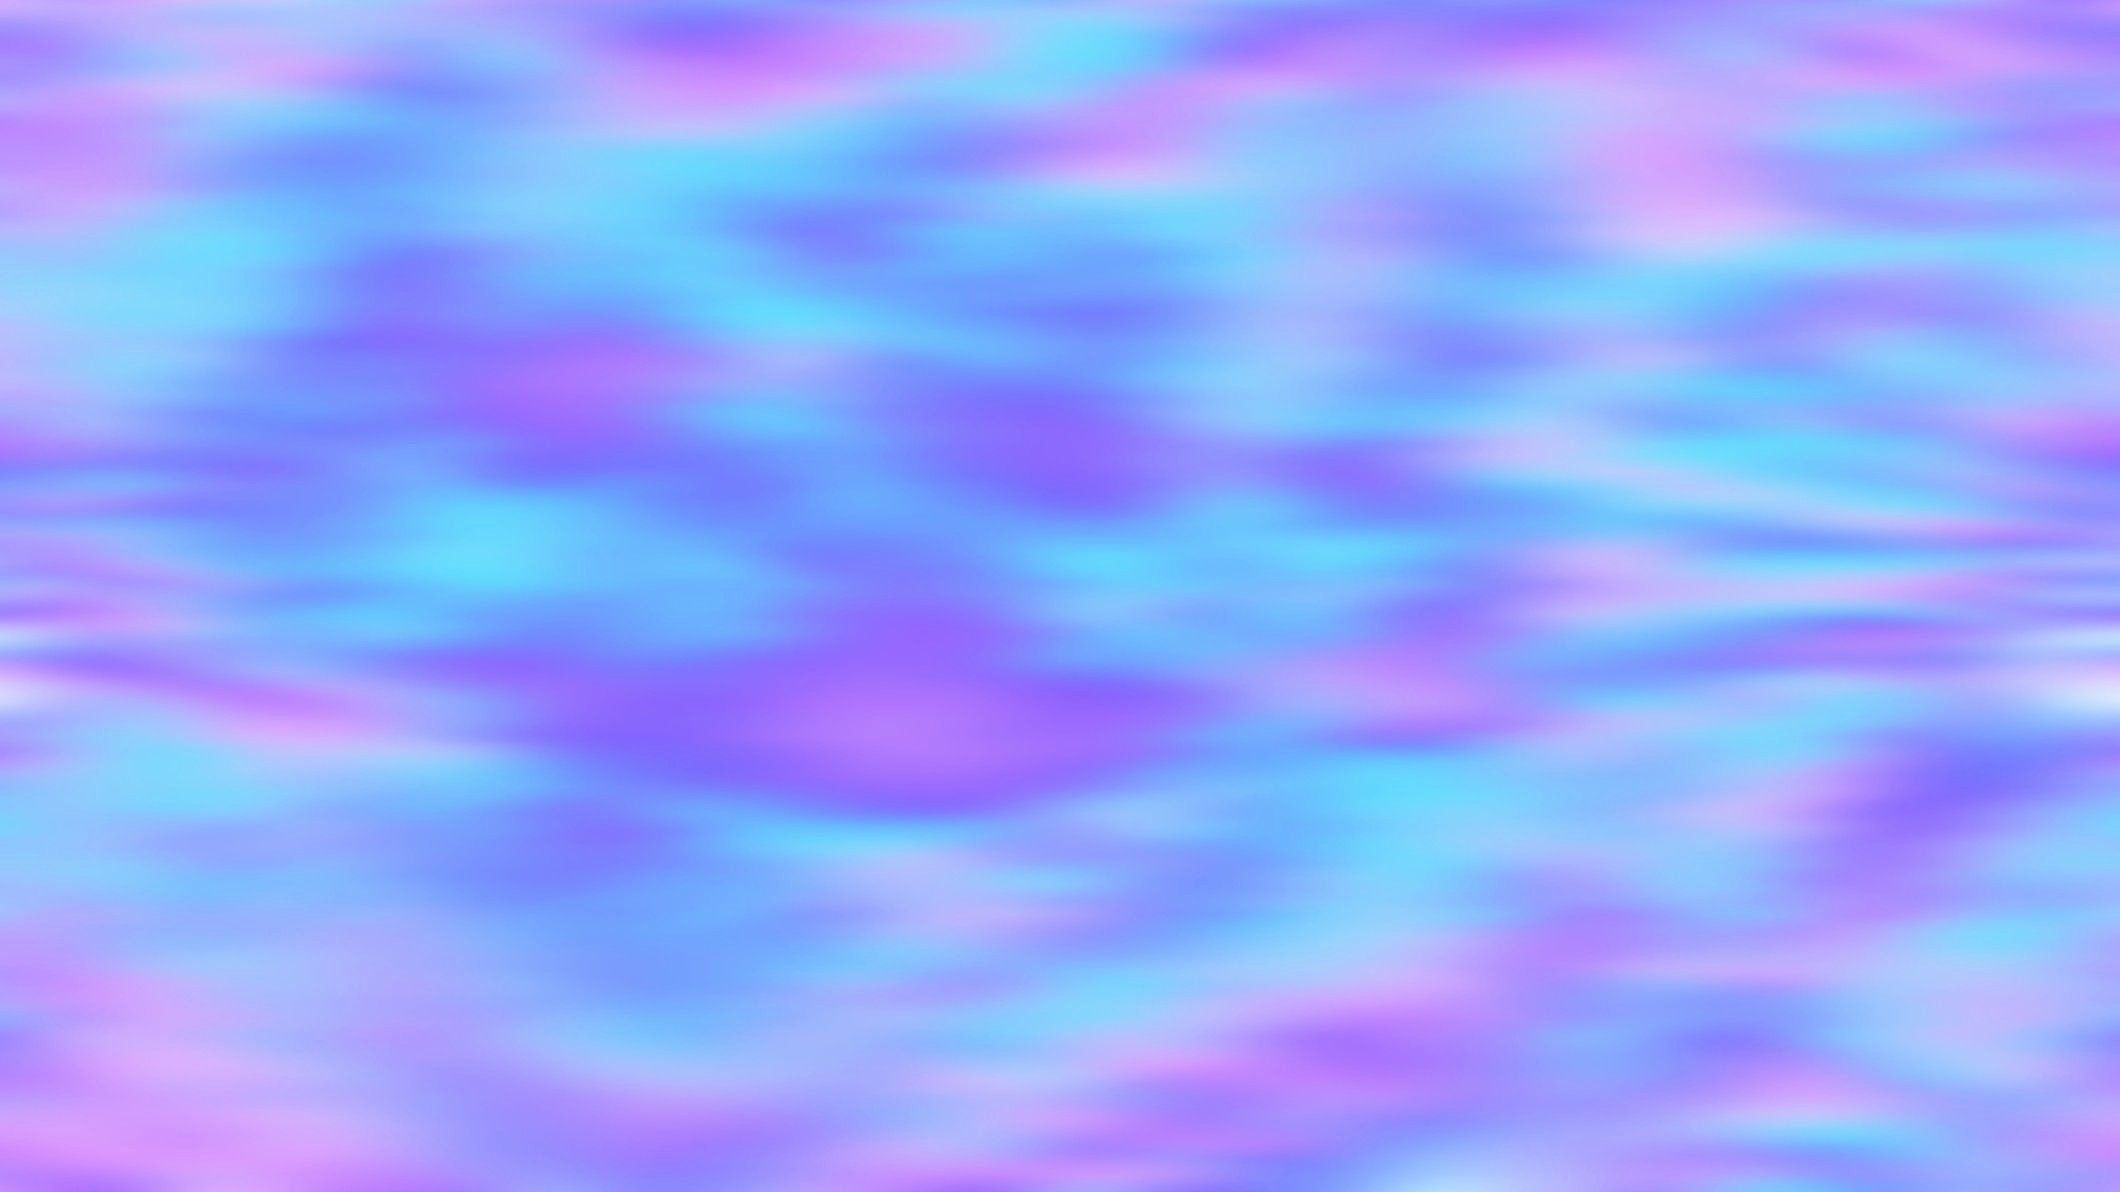 Youtube Channel Art Backgrounds Awesome Collection Girly Youtube Channel Art Channel Art Youtube Channel Art Youtube Banner Backgrounds